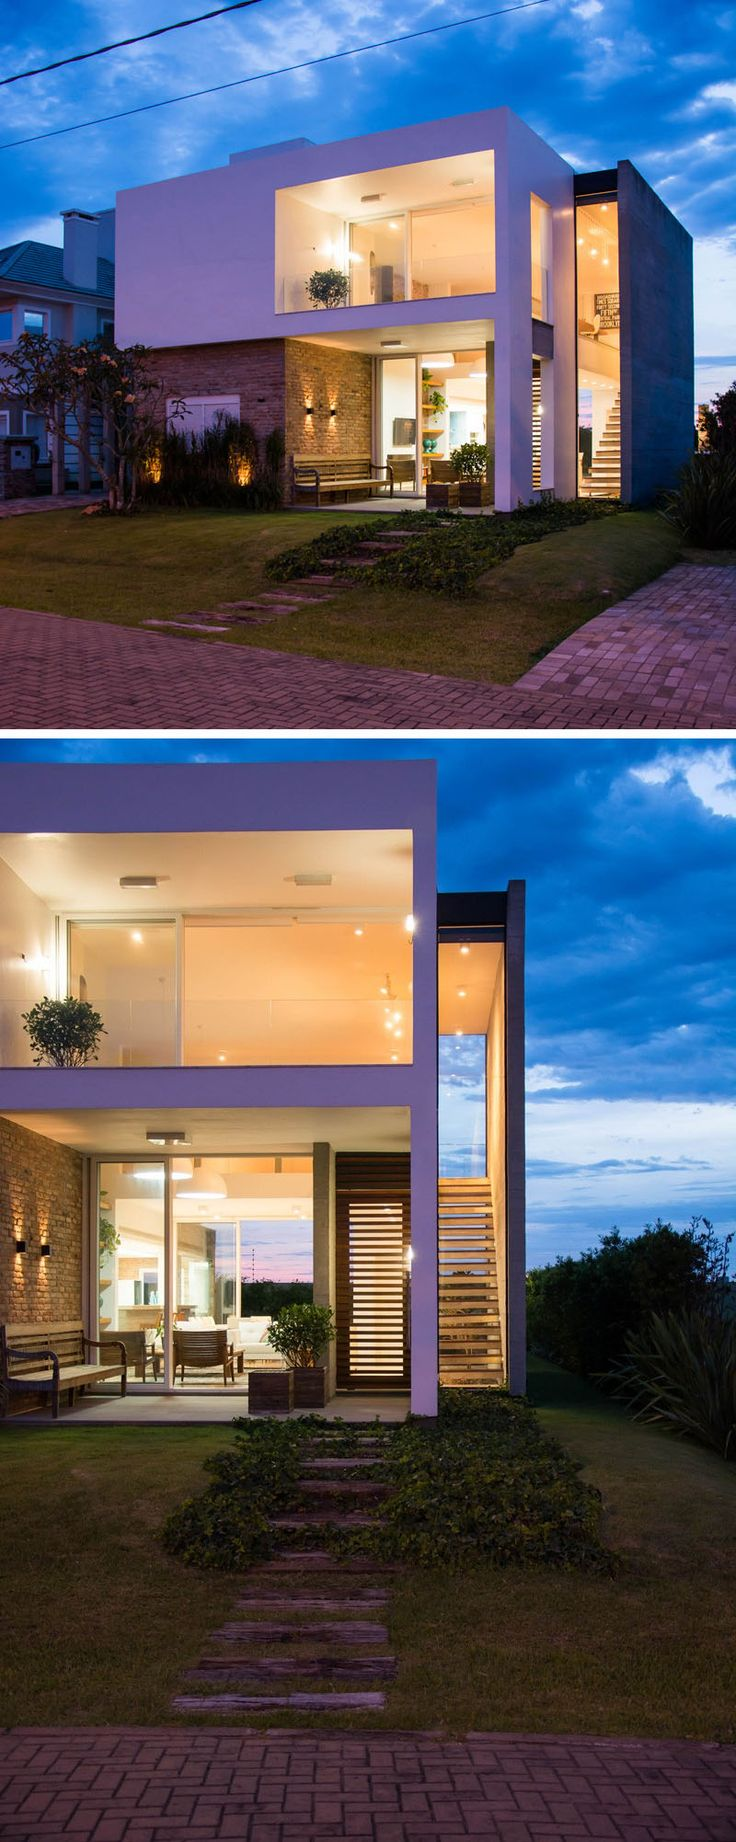 ESTUDIO 30 51 designed this house for a family in Brazil.